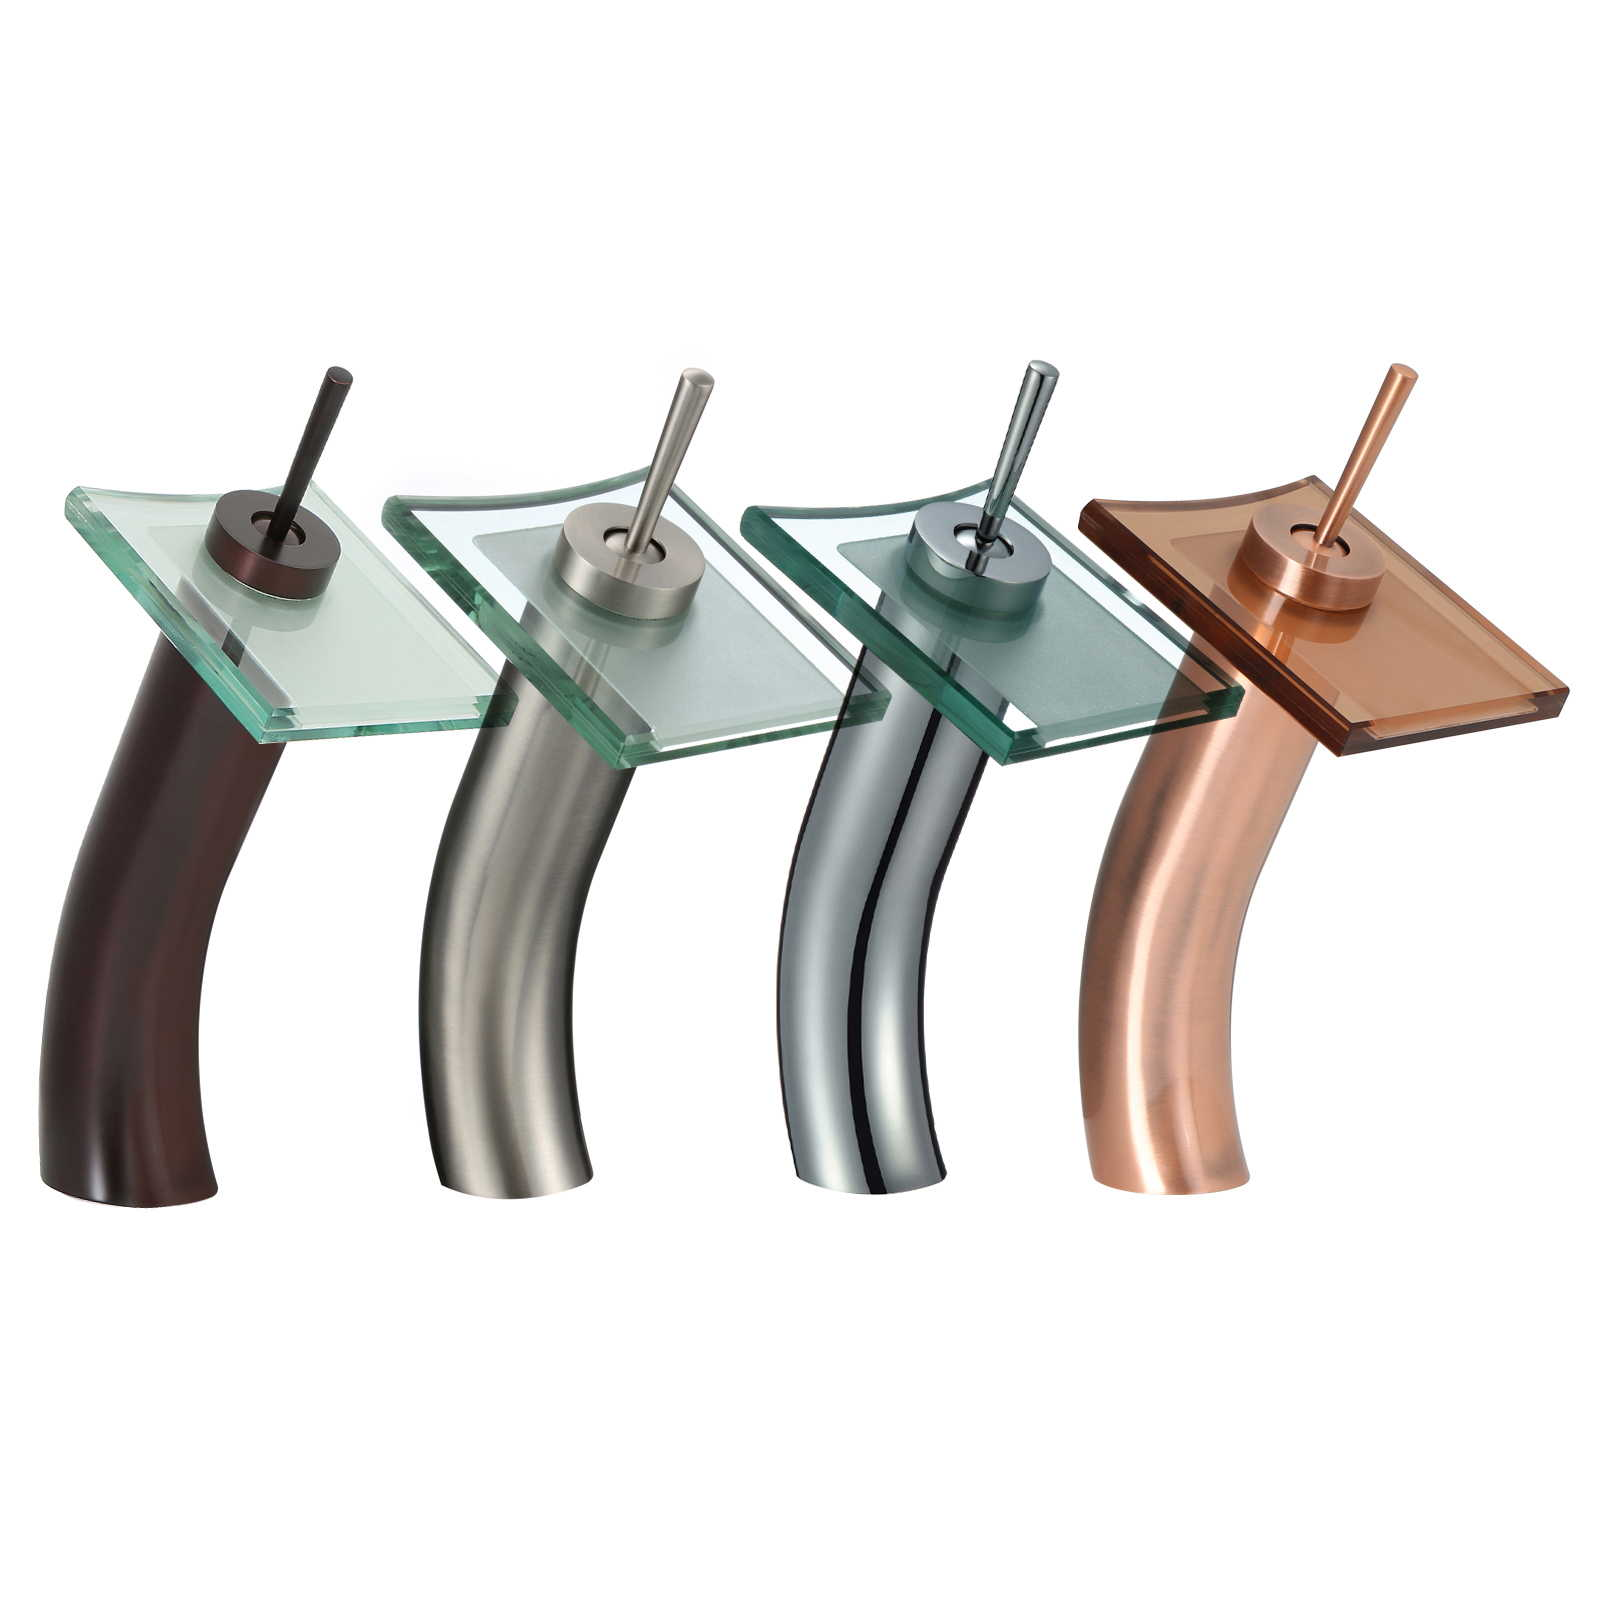 FREUER Vetro Collection: Glass Waterfall Bathroom Sink Faucet - Multiple Finishes Available